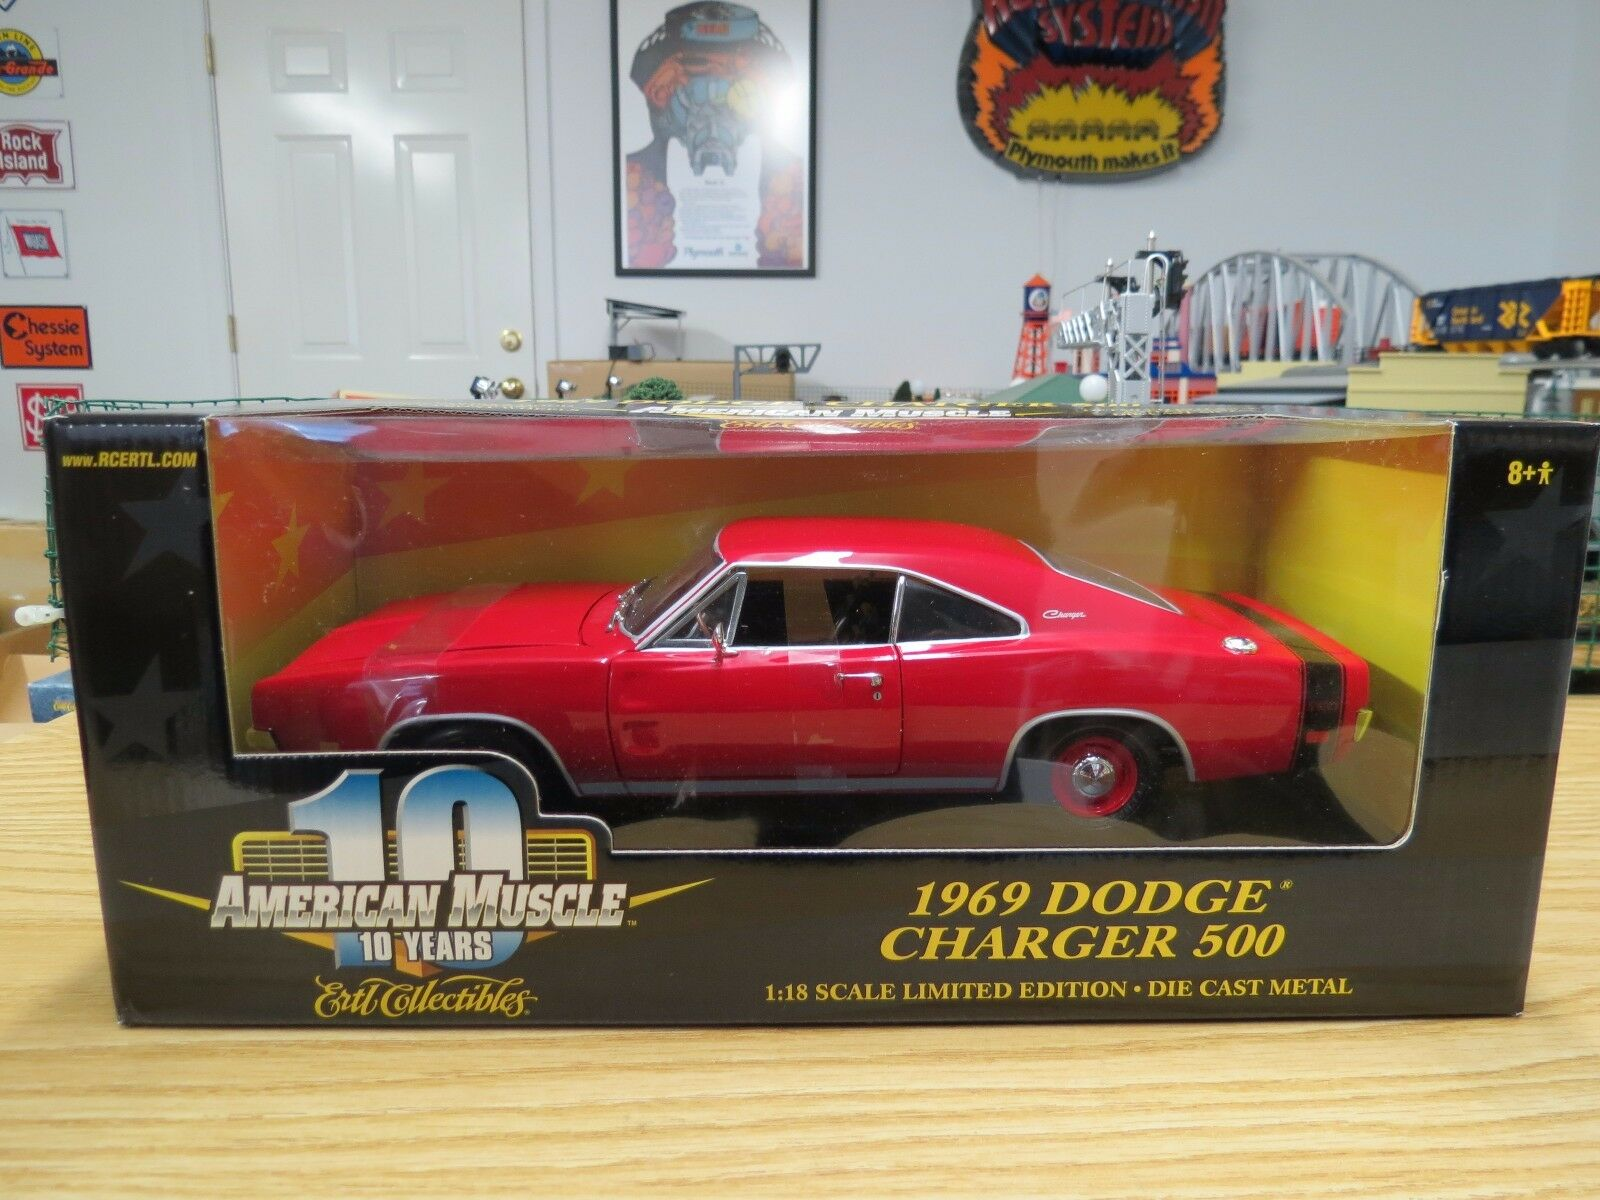 Rare Ertl American Muscle rot 1969 Dodge Charger 500 W Factory Error On Box, New